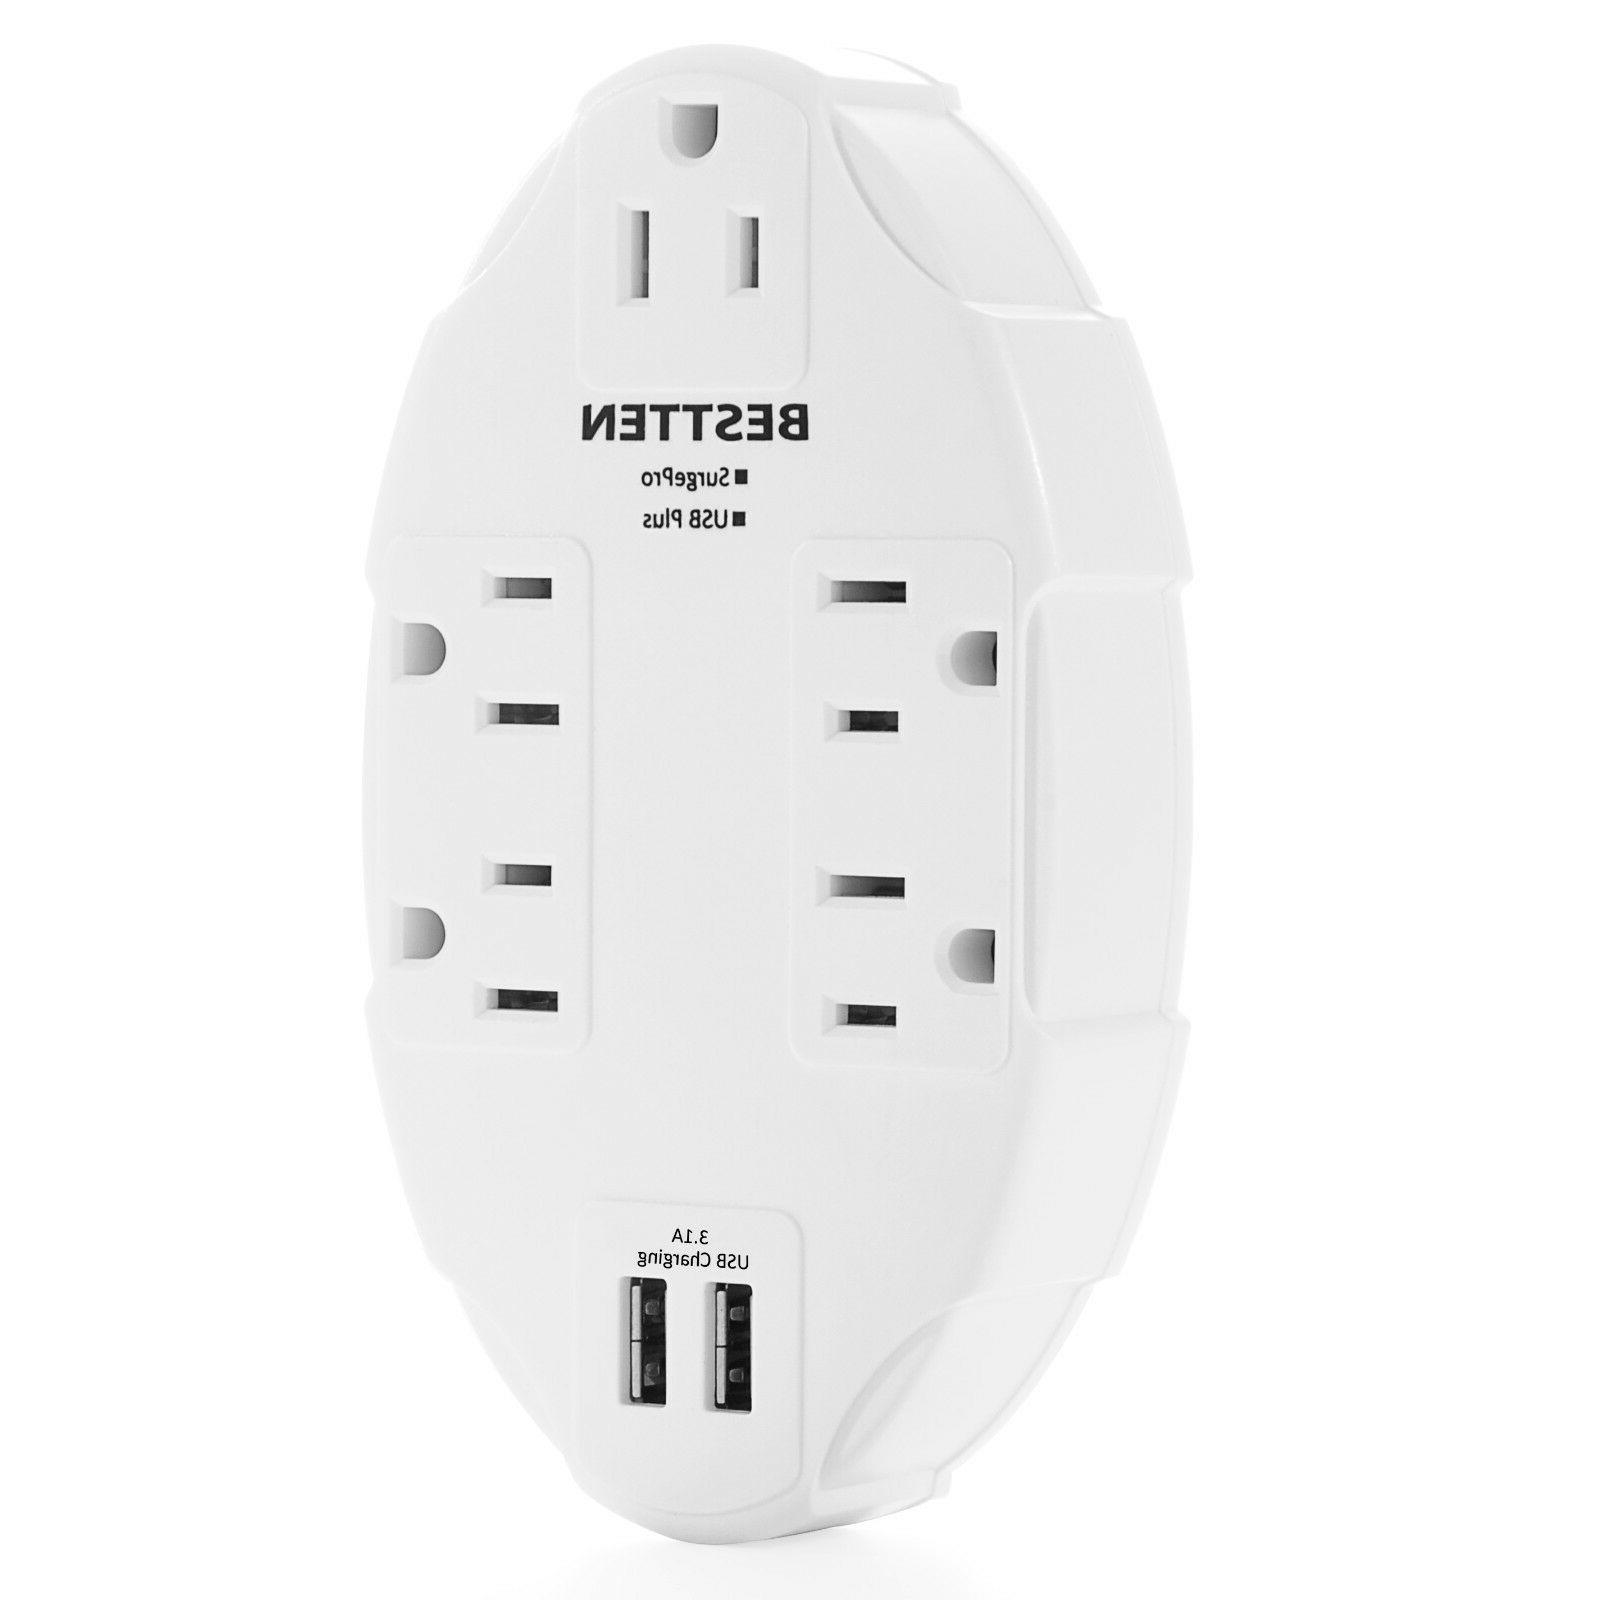 Surge Protector Adapter Electrical Plug with Ports